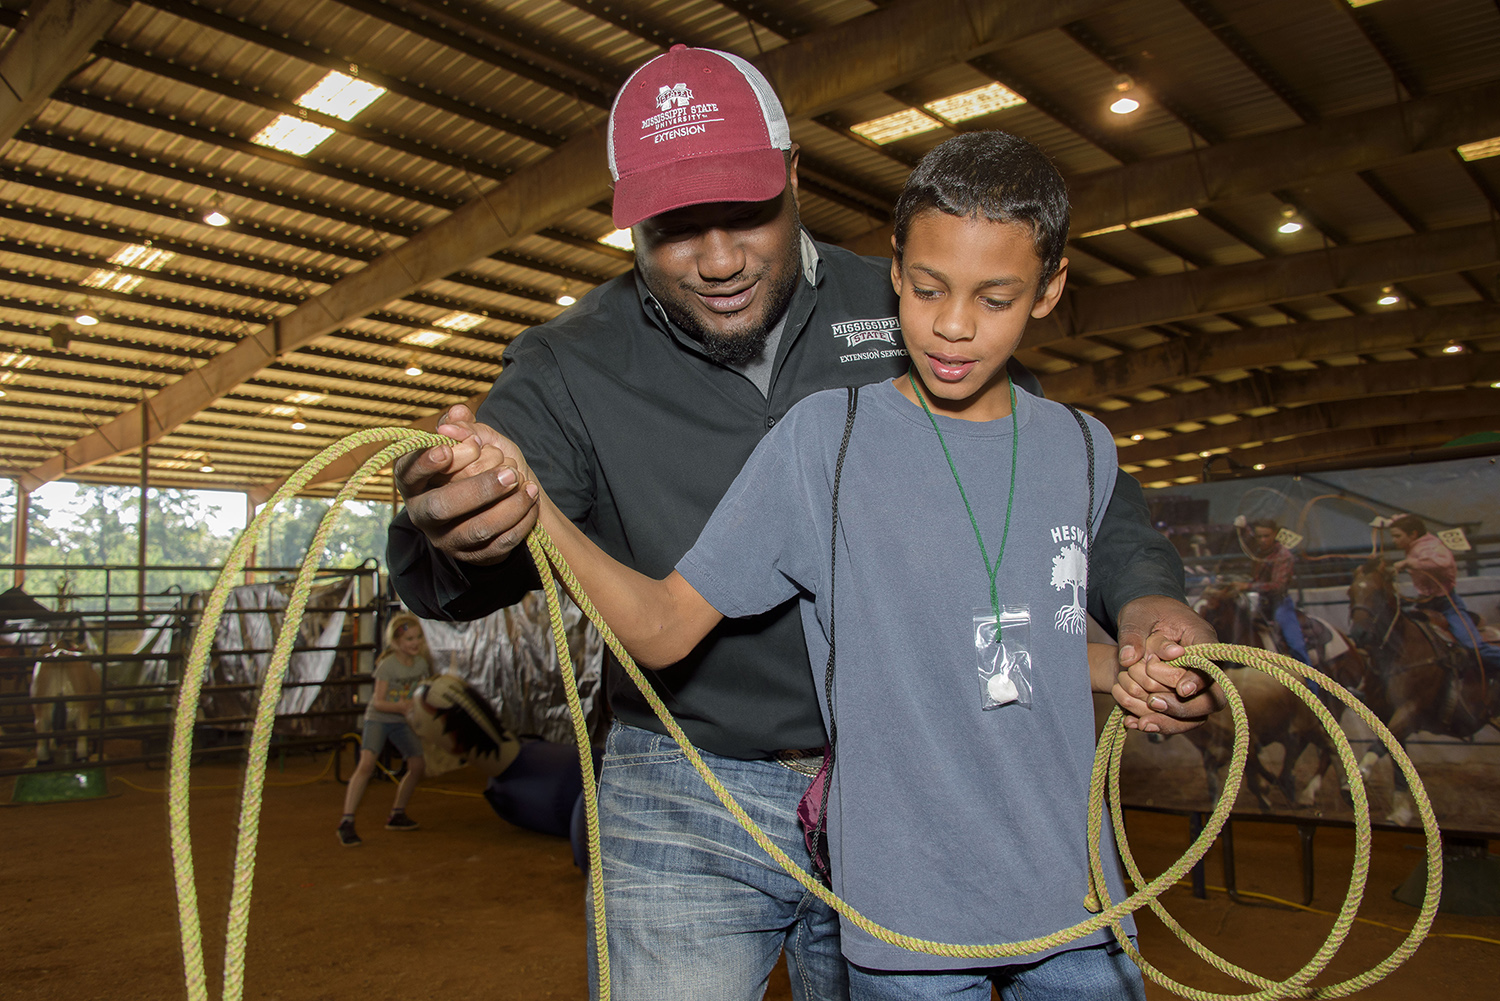 A male African American Extension agent teaches a young African American male FARMtastic visitor how to properly hold a lasso.